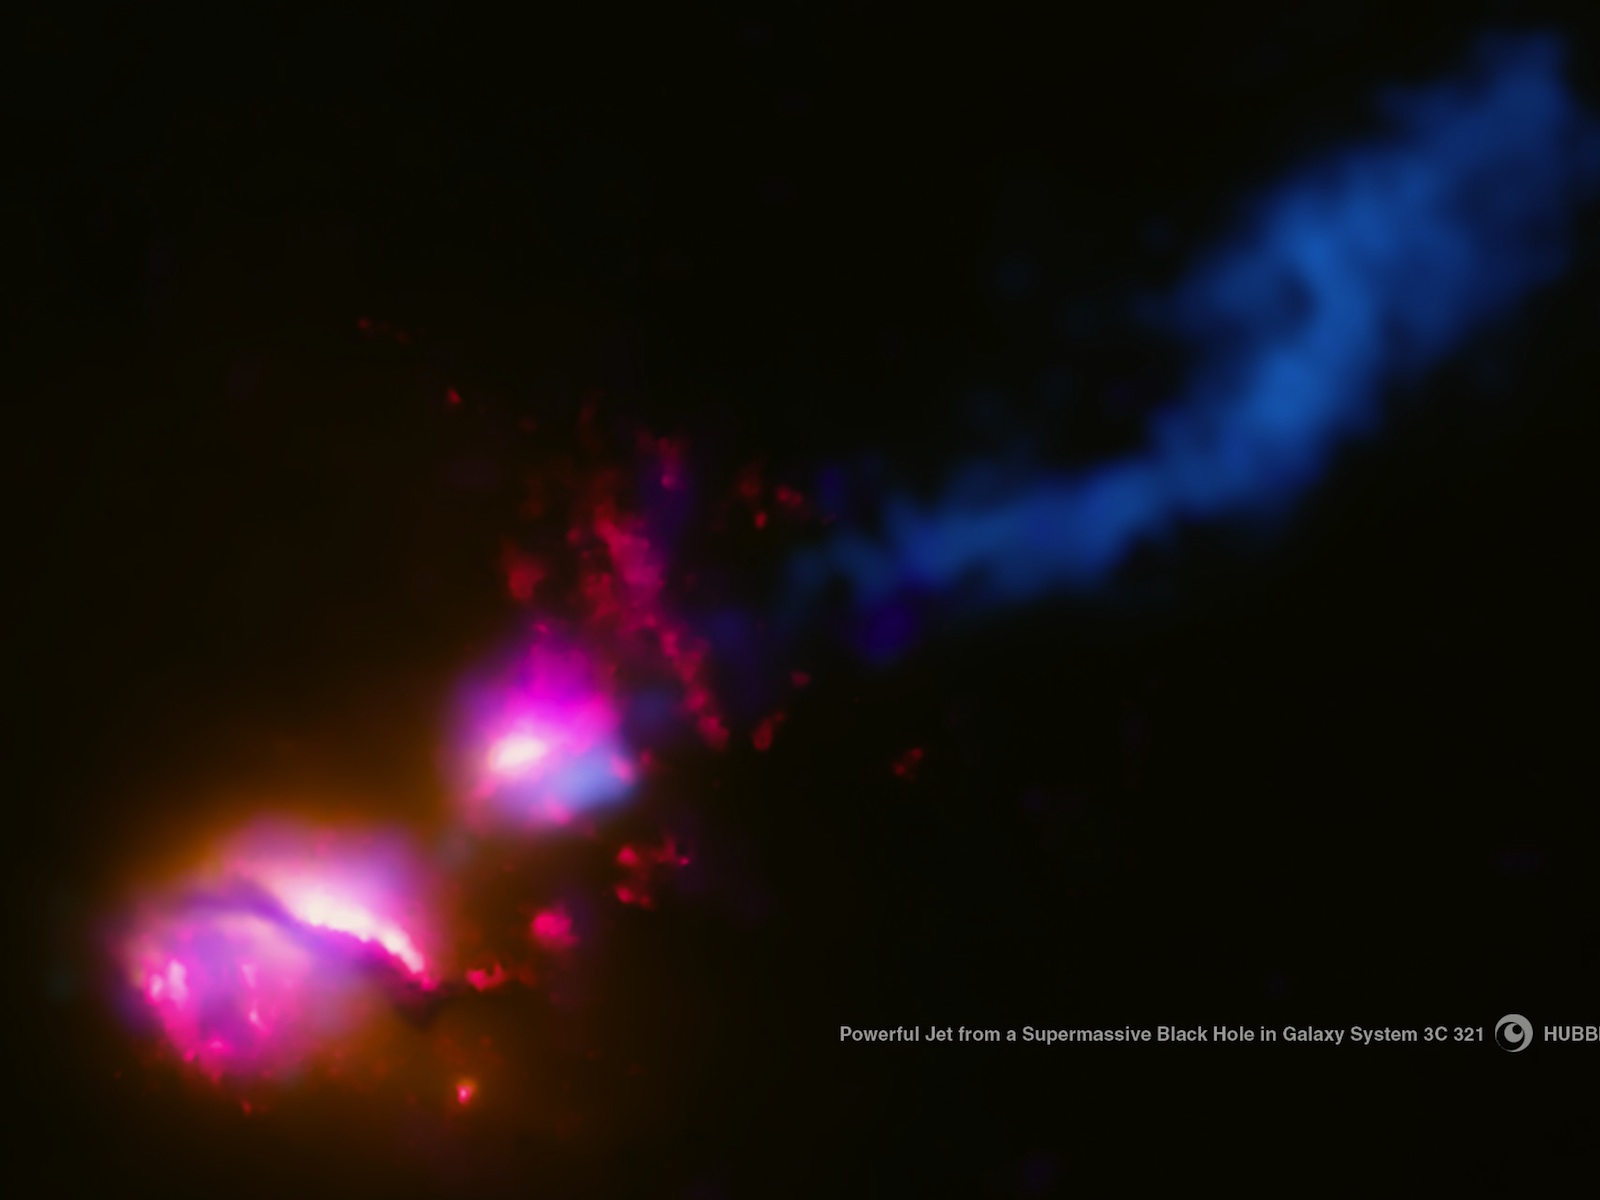 Black Hole in Galaxy System 3C 321